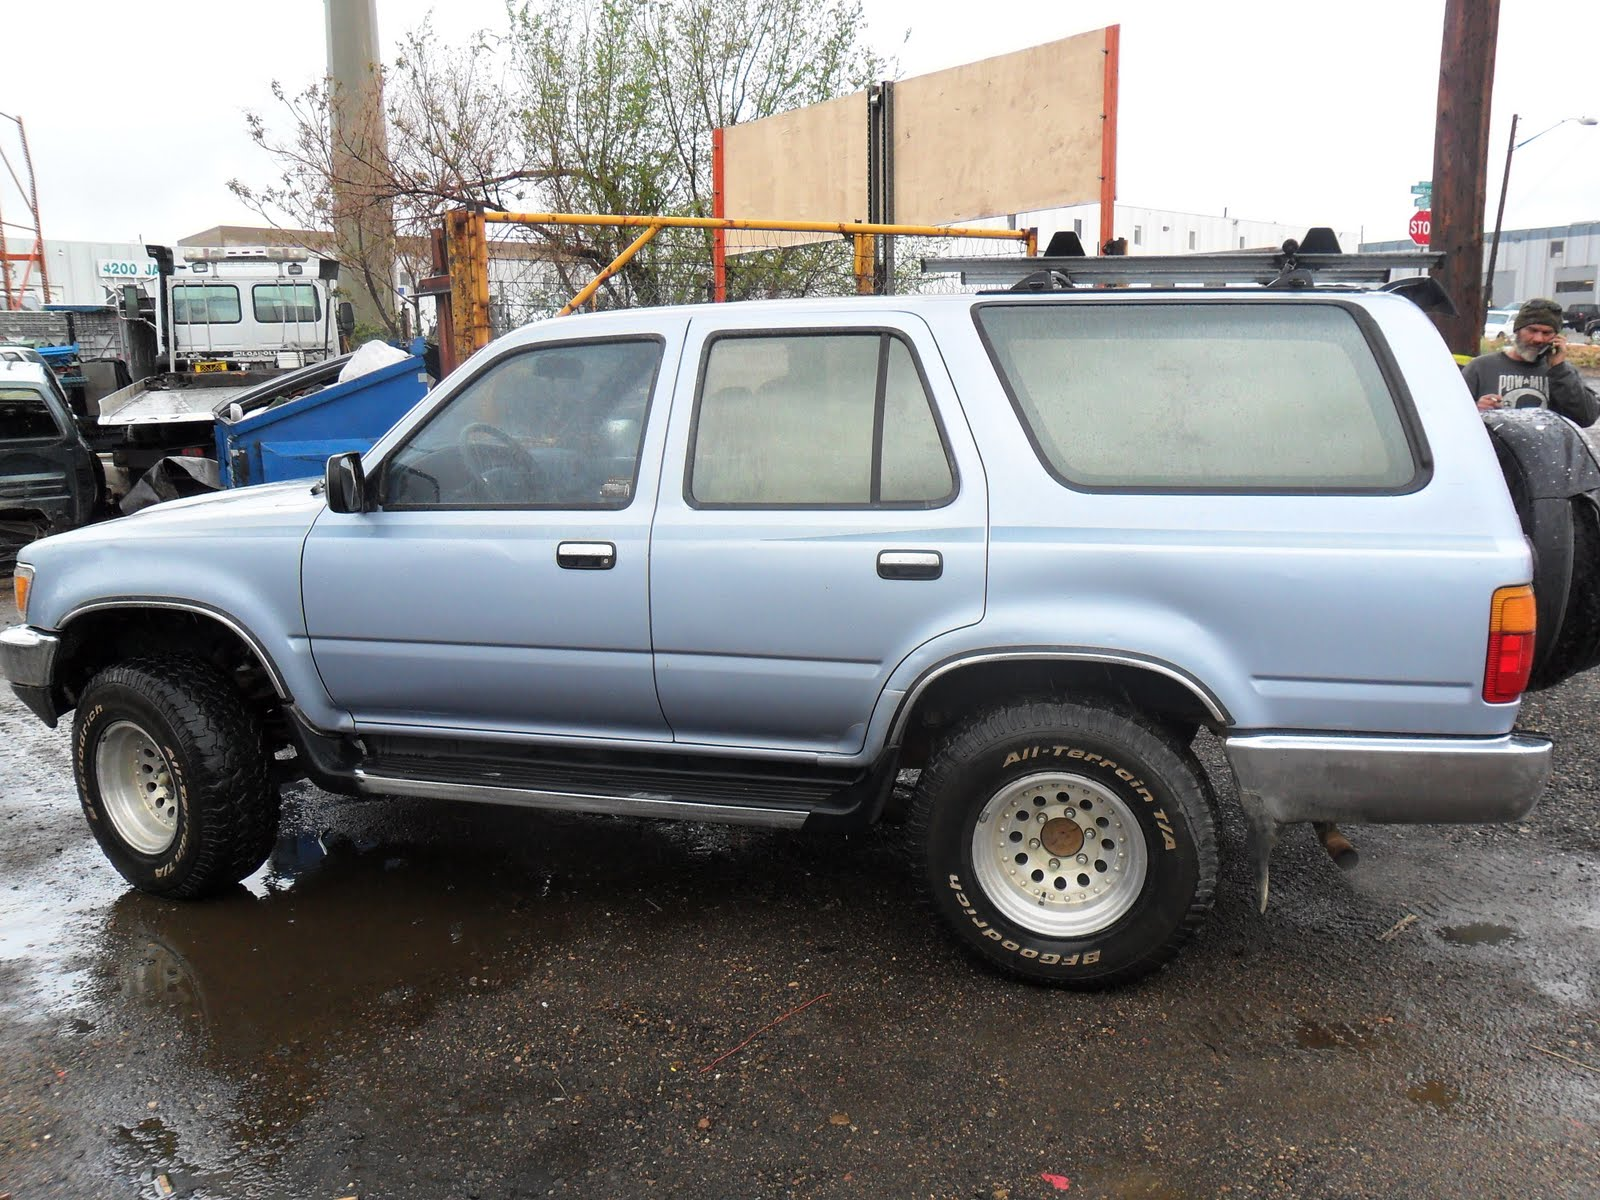 New Arrivals At Jims Used Toyota Truck Parts Toyota Runner X - 4runner truck